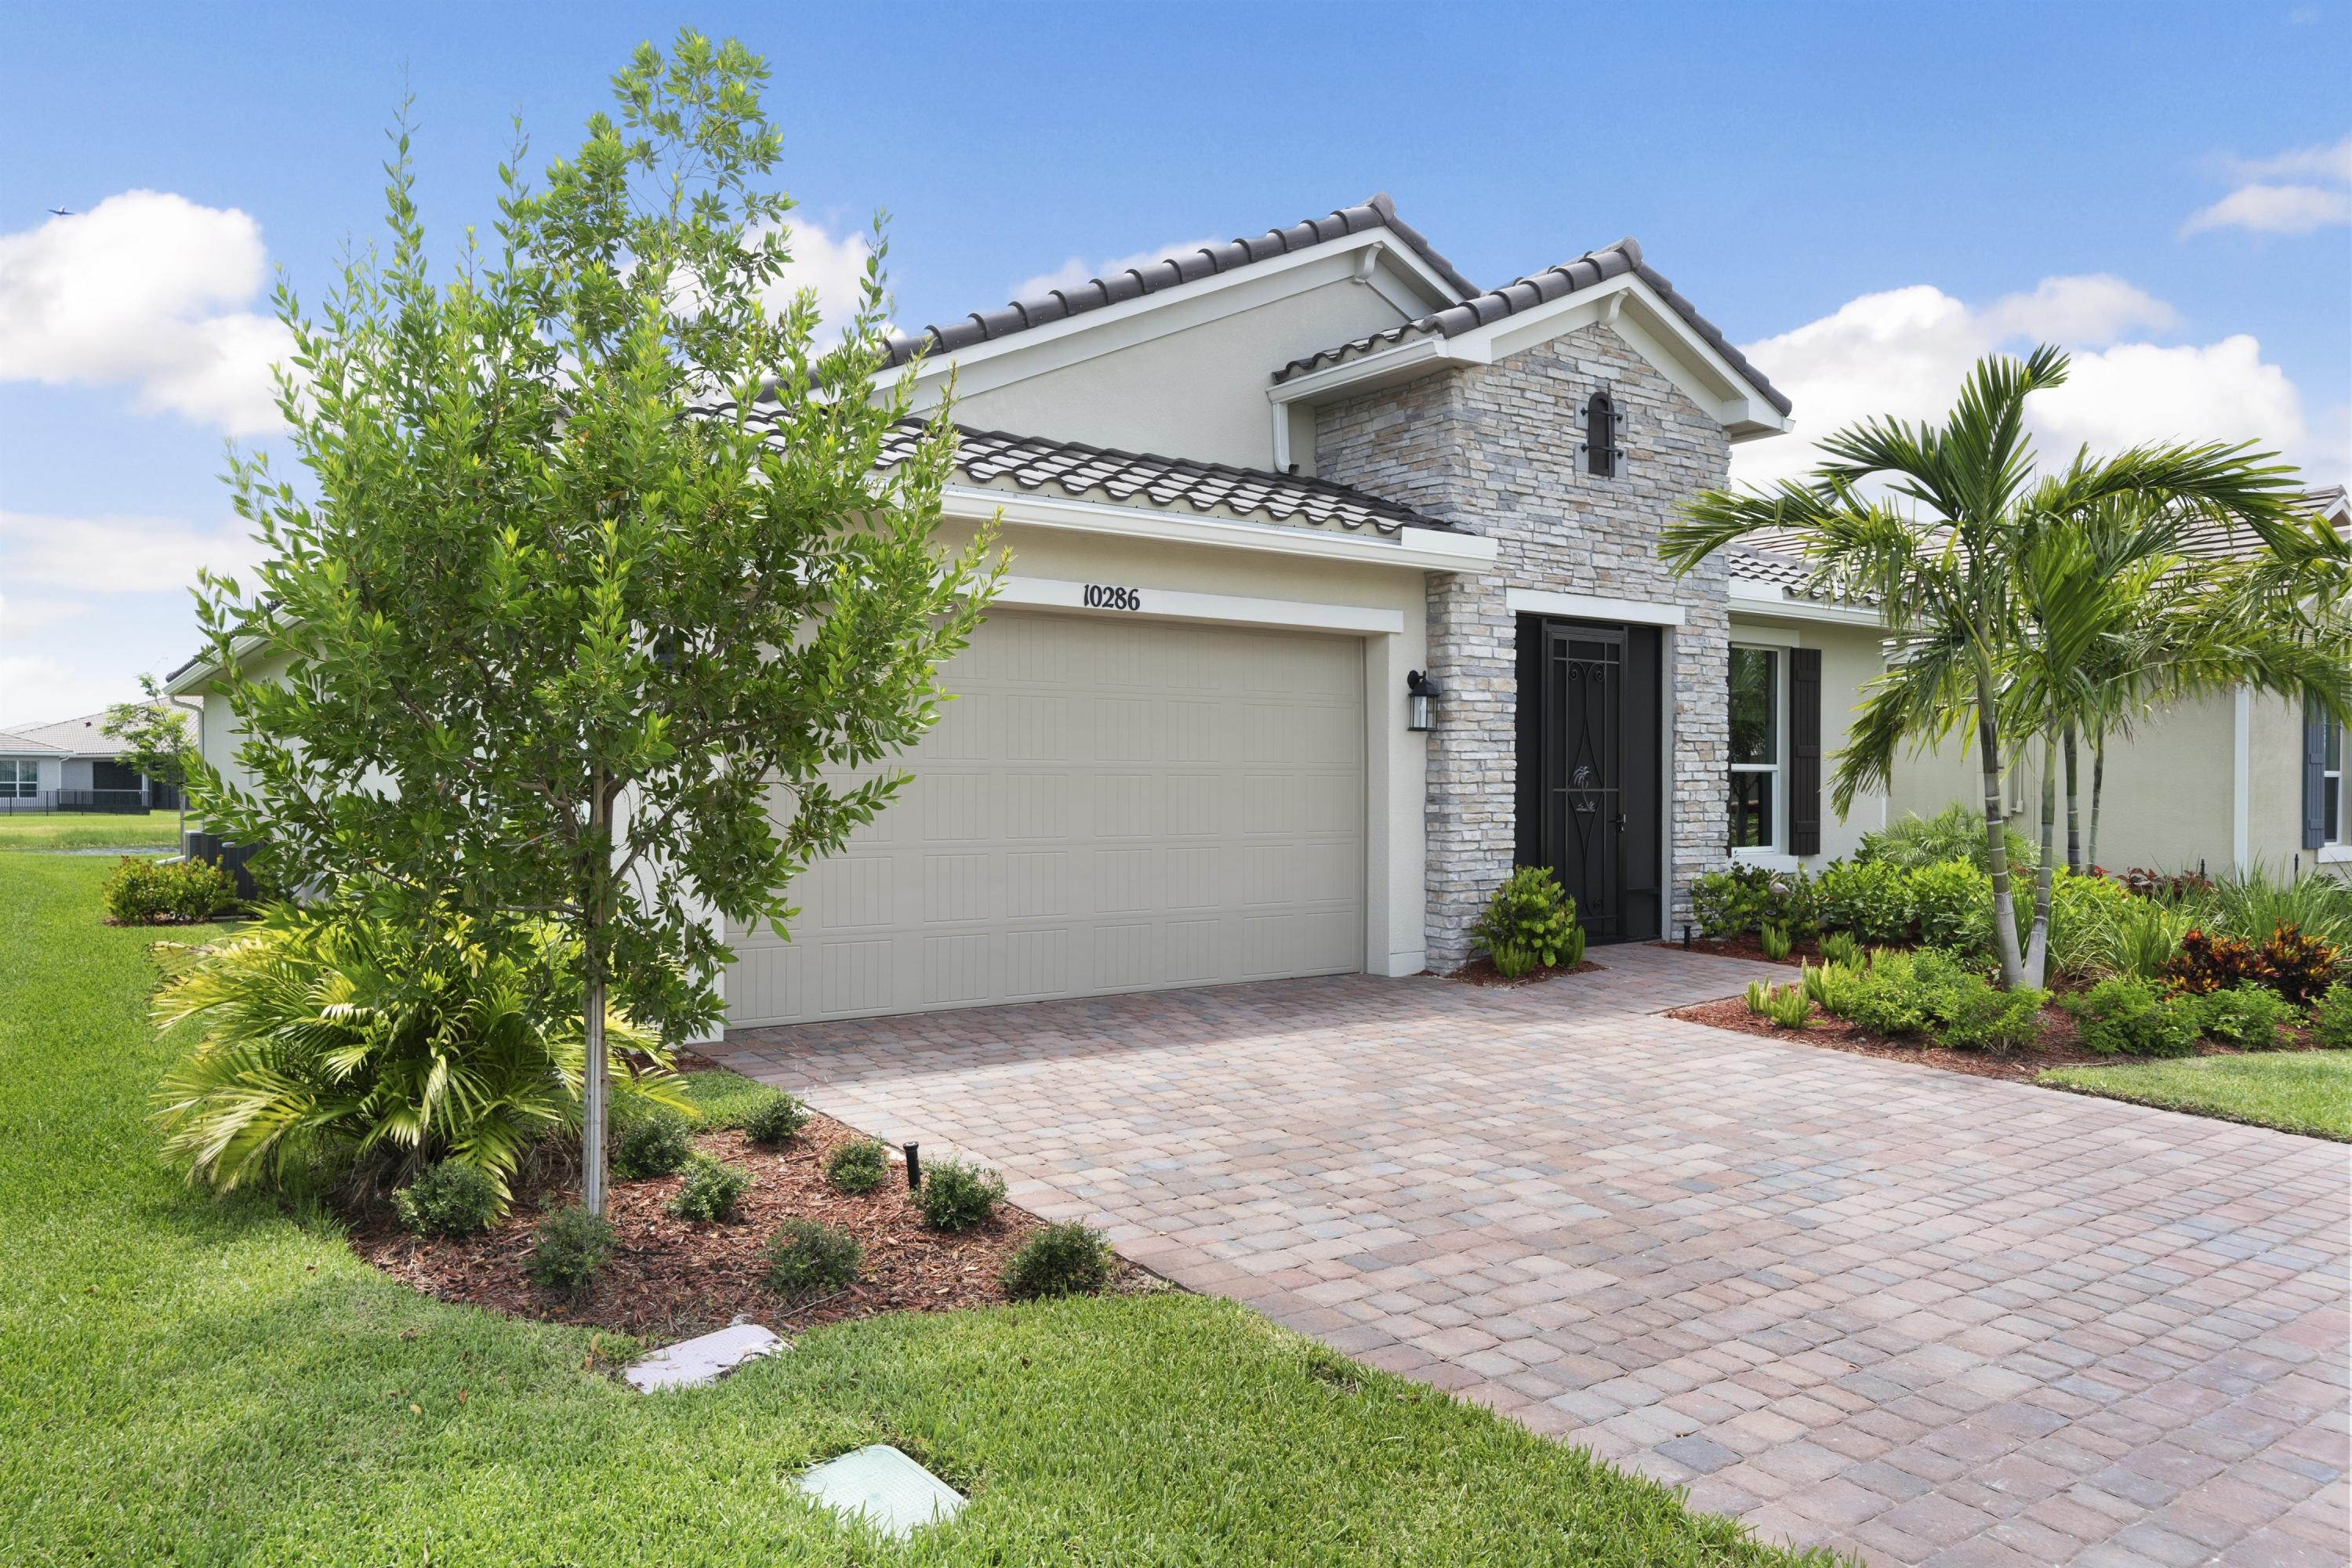 One of Port Saint Lucie 2 Bedroom Homes for Sale at 10286 SW Coral Tree Circle